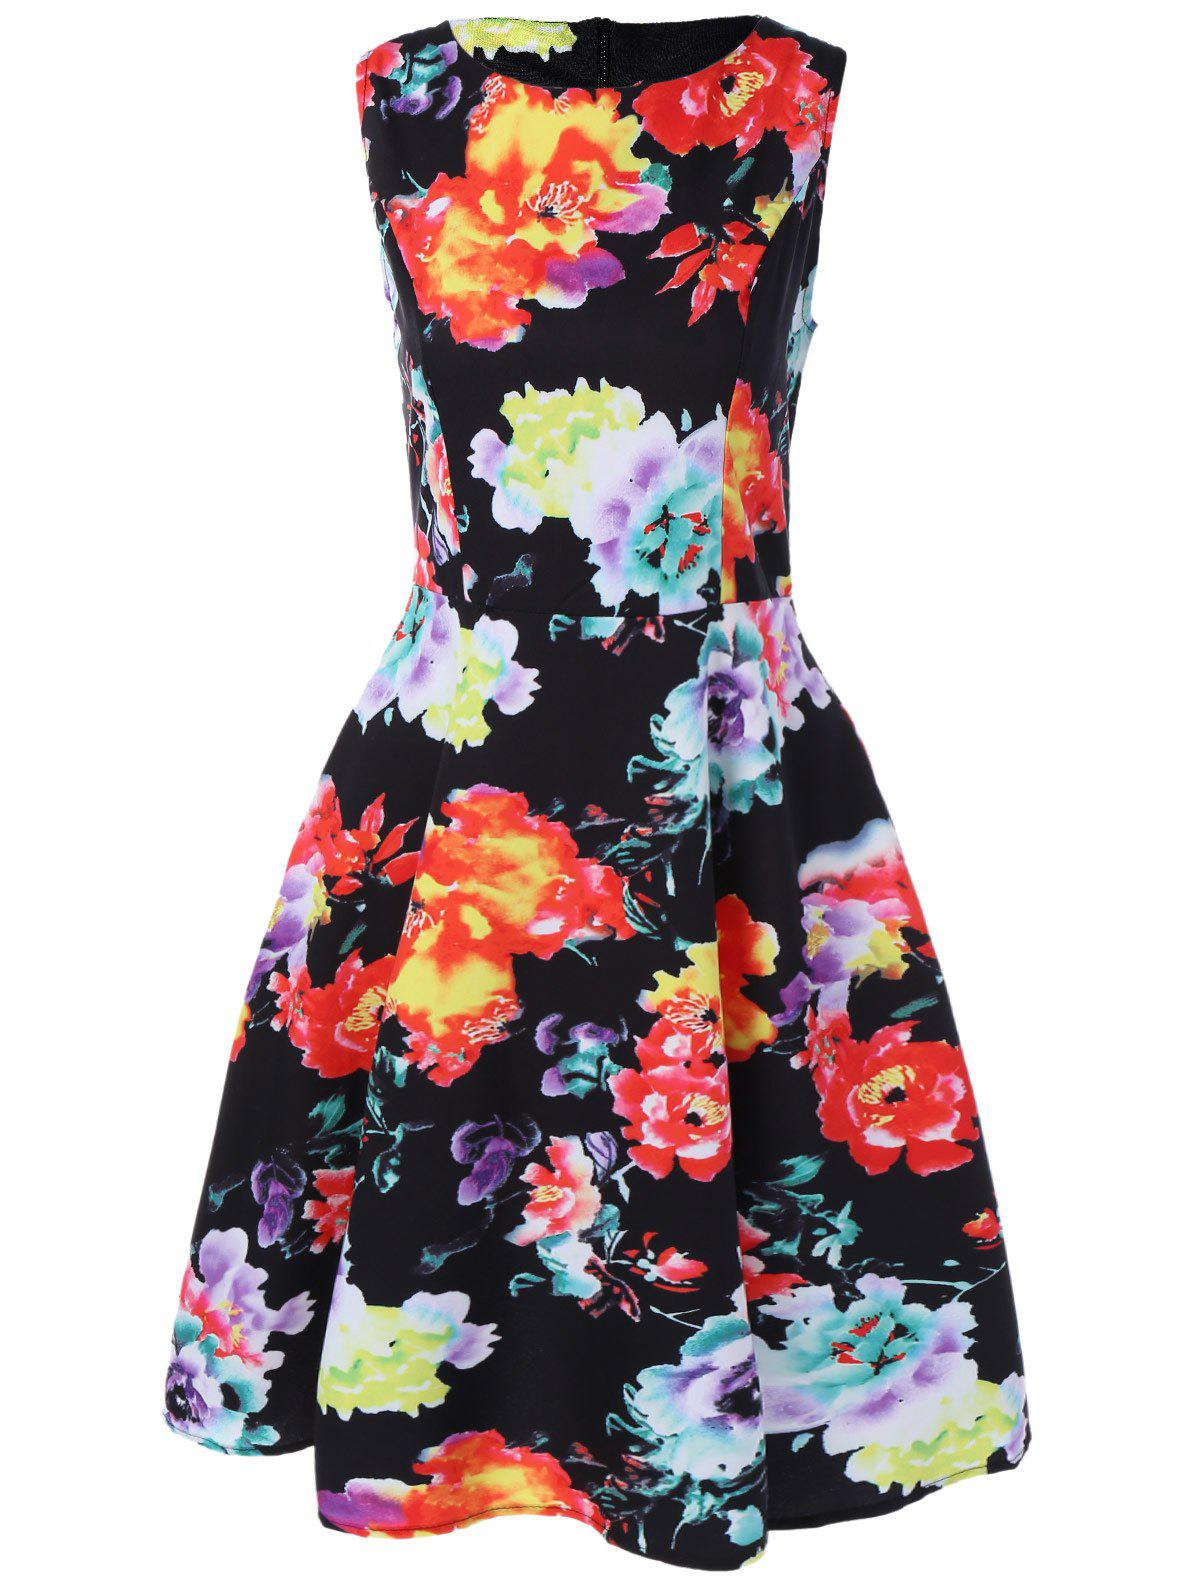 Retro Boat Neck Sleeveless Floral Print Flare Dress